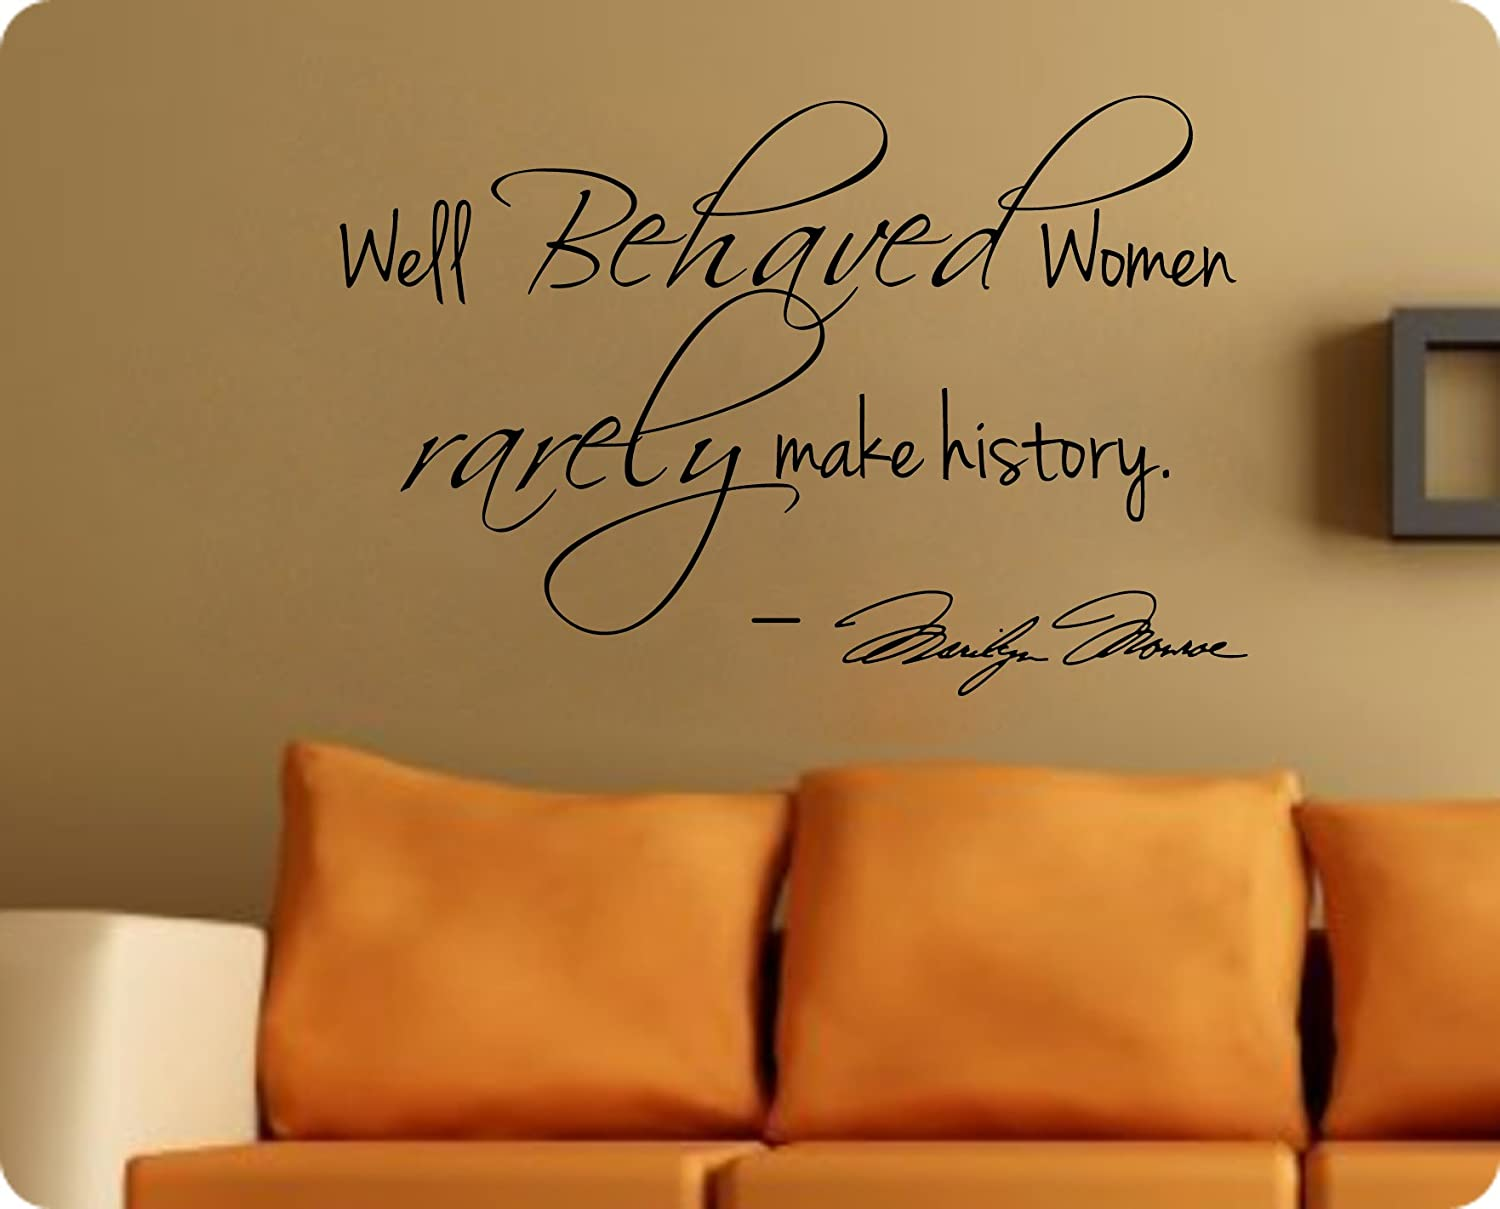 Marilyn Monroe Wall Decal Decor Quote Well Behaved Women...Large Nice    Wall Decals For Women   Amazon.com